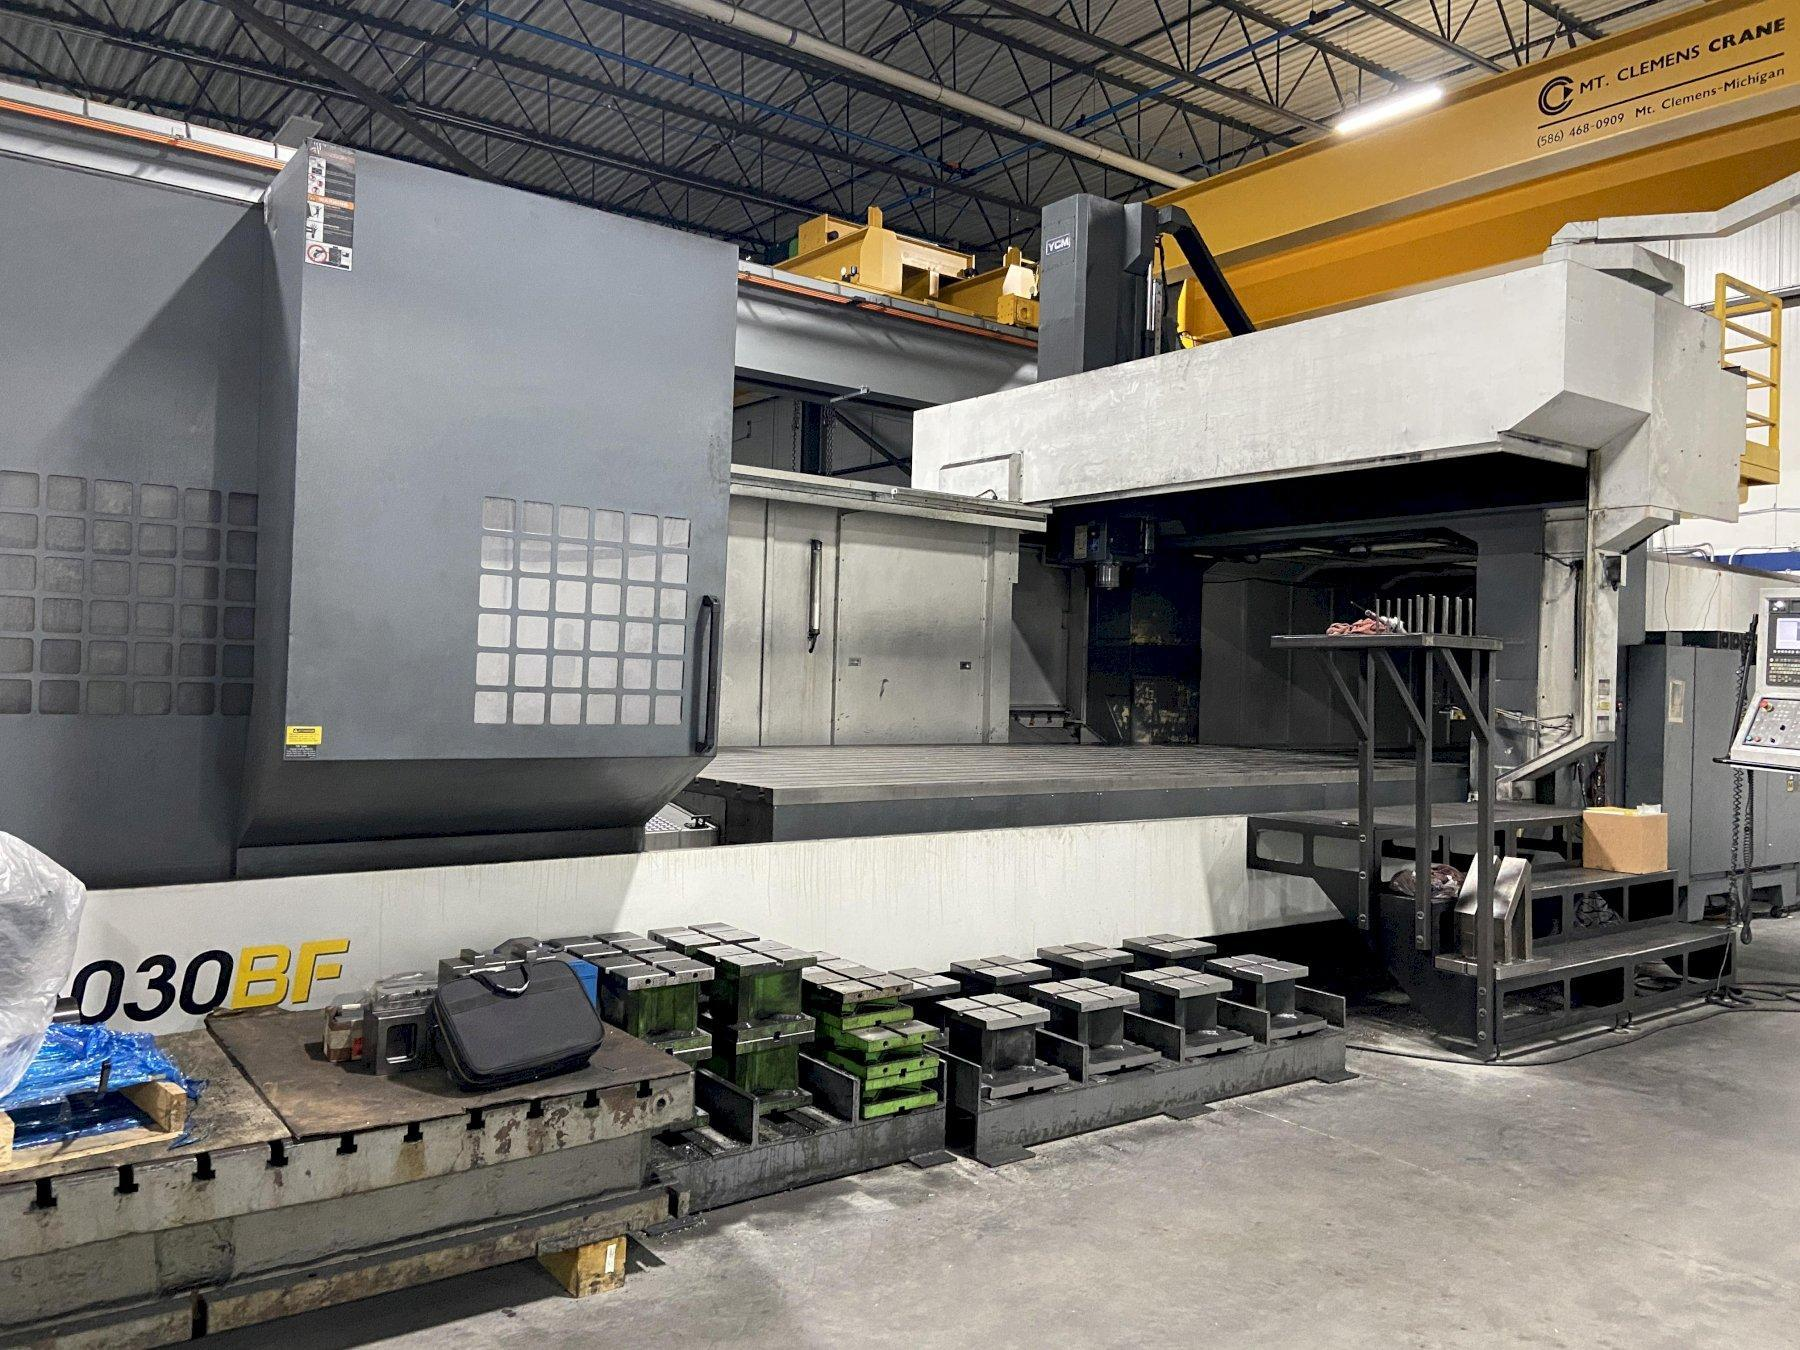 YCM DCV6030BF CNC Bridge-Style Vertical Machining Center (2013)